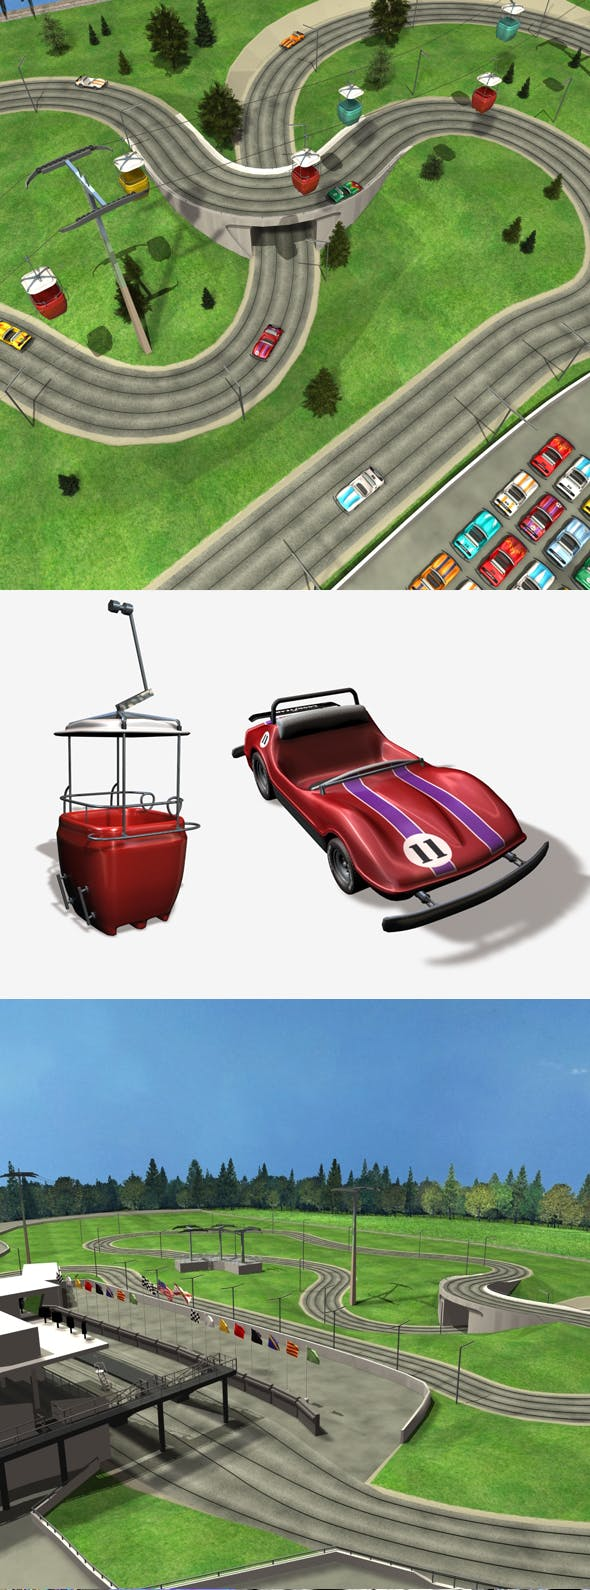 Speedway Model with Car and Sky Gondola - 3DOcean Item for Sale